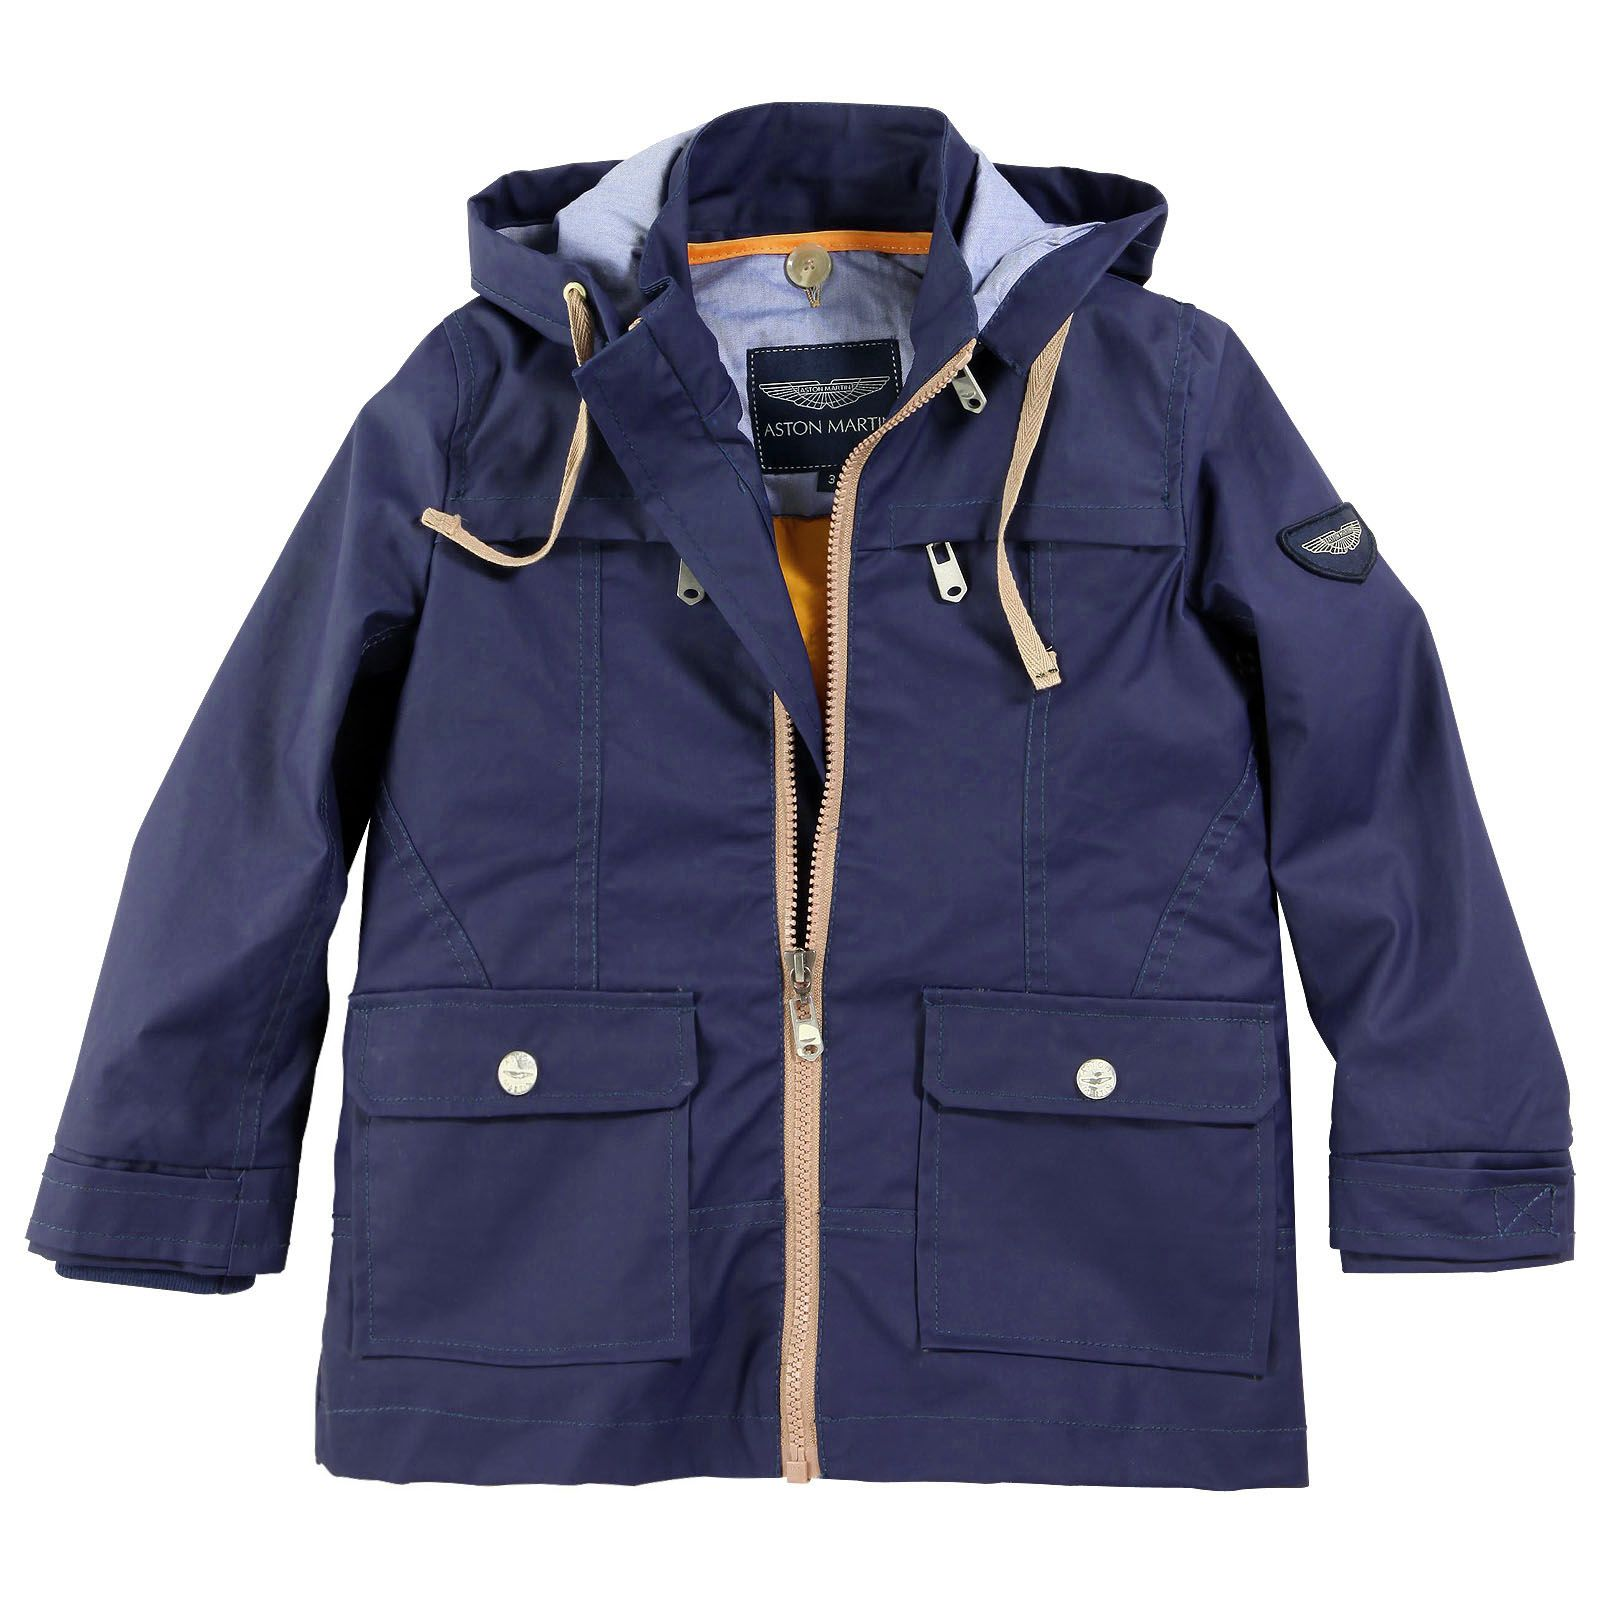 Aston Martin Navy blue zip raincoat with a hood Blue - 34907 ...